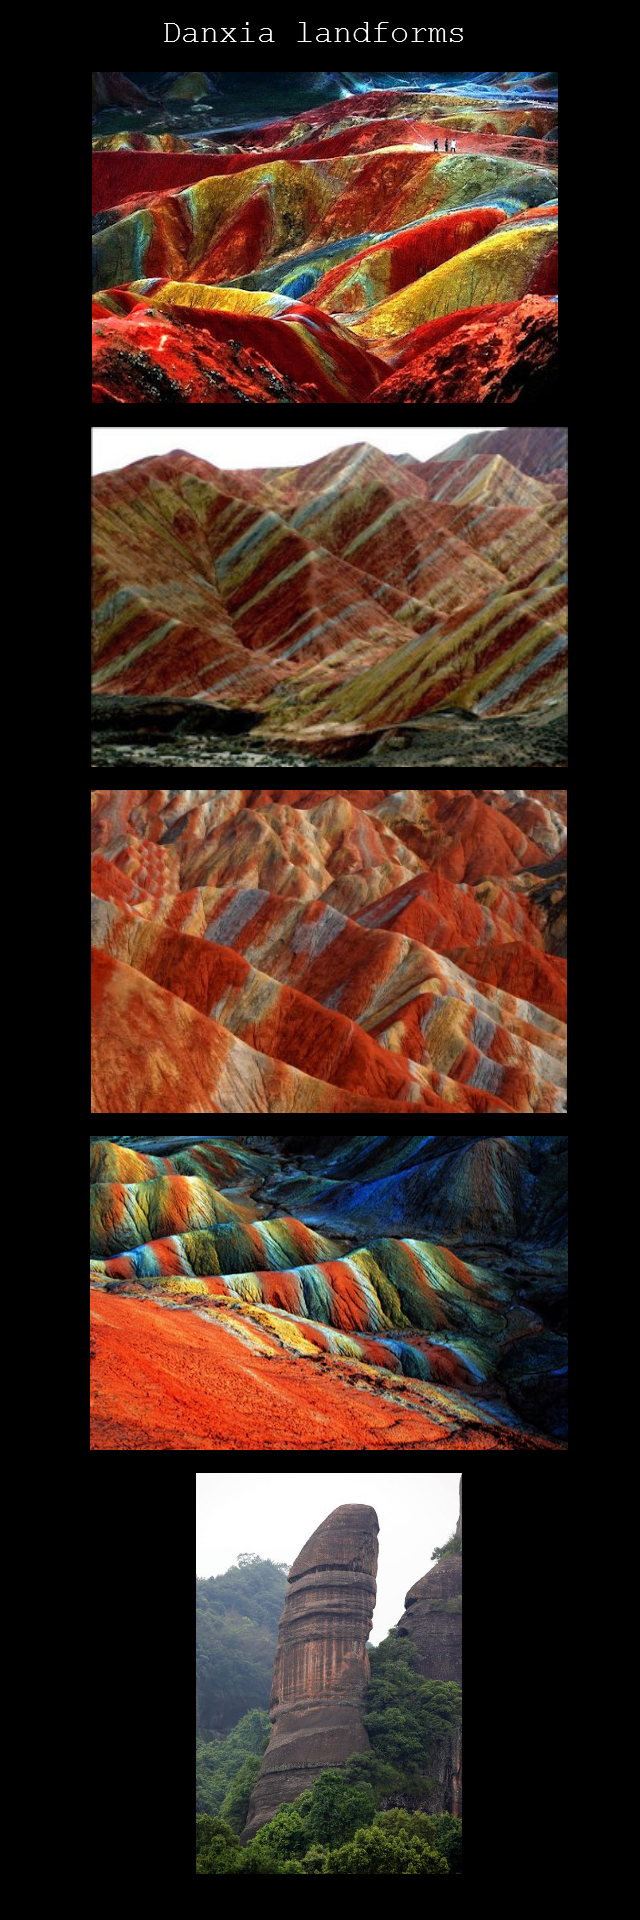 Danxia landforms. Danxia landforms are found in China. I thought they looked pretty awesome and thought some of you might like seeing them... Last ones a dick.